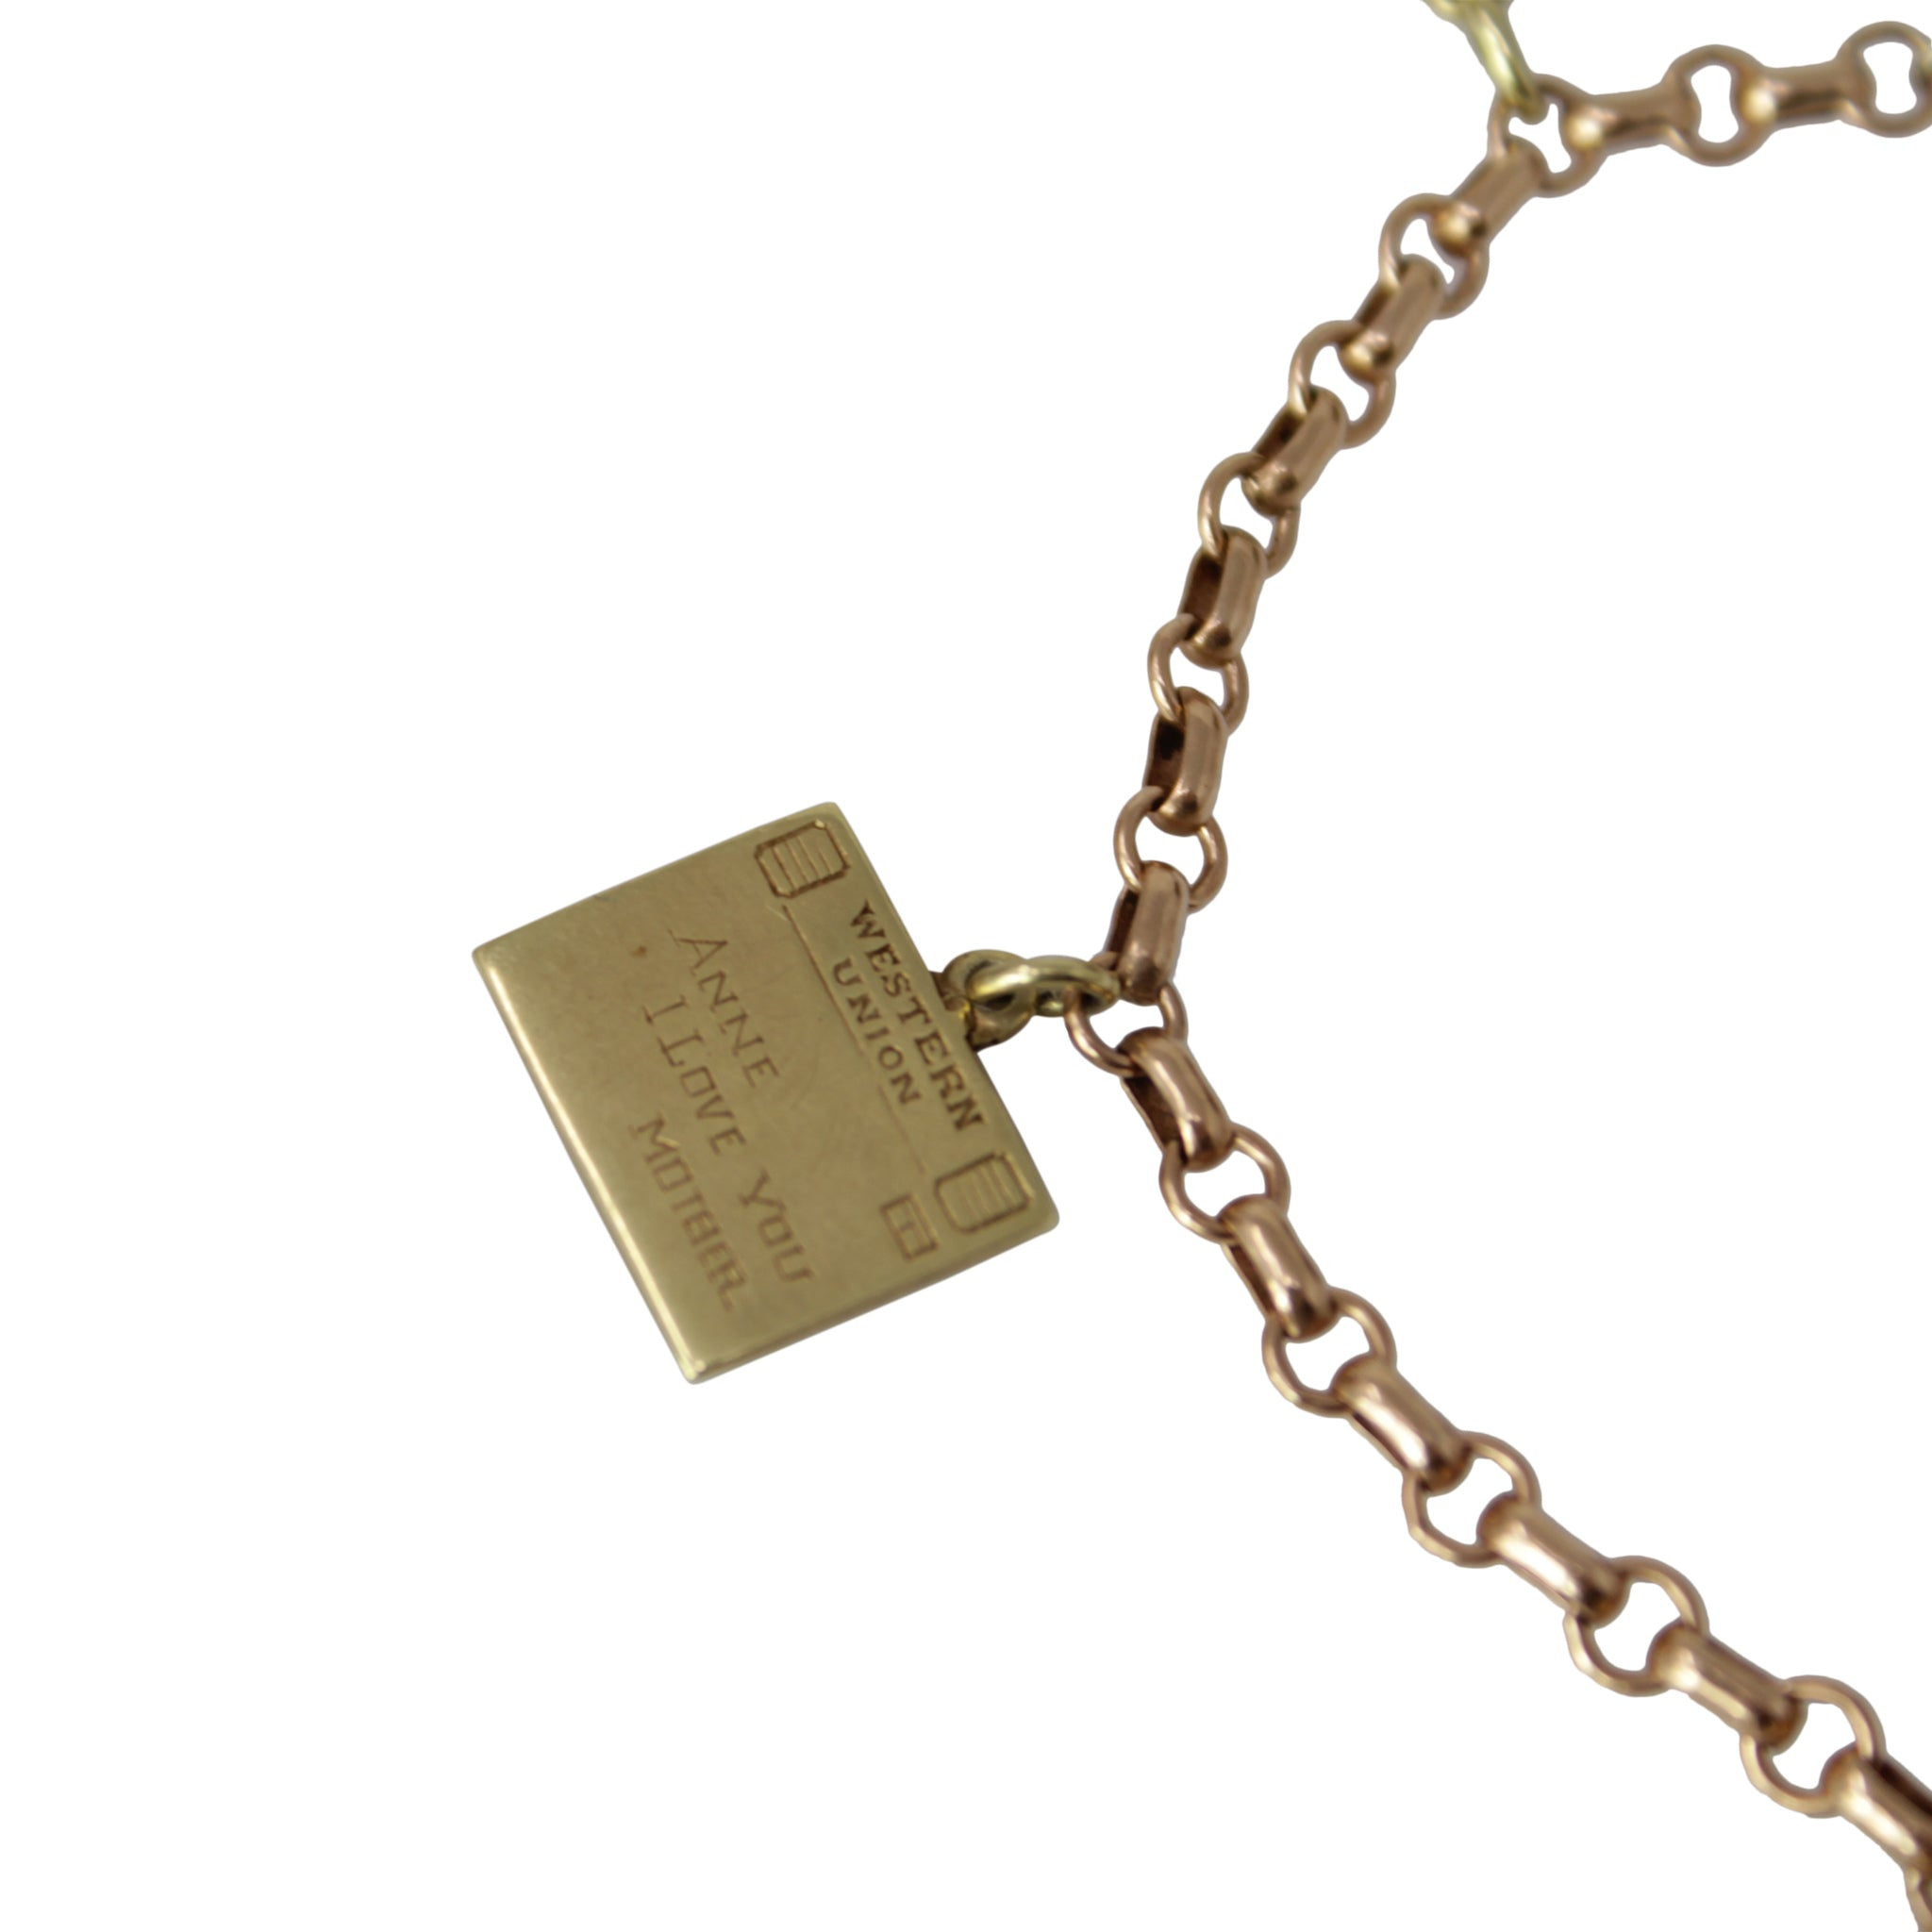 Anne's Memory Charm Bracelet - 14k Yellow Gold and Rose Gold Winter Christmas Charms